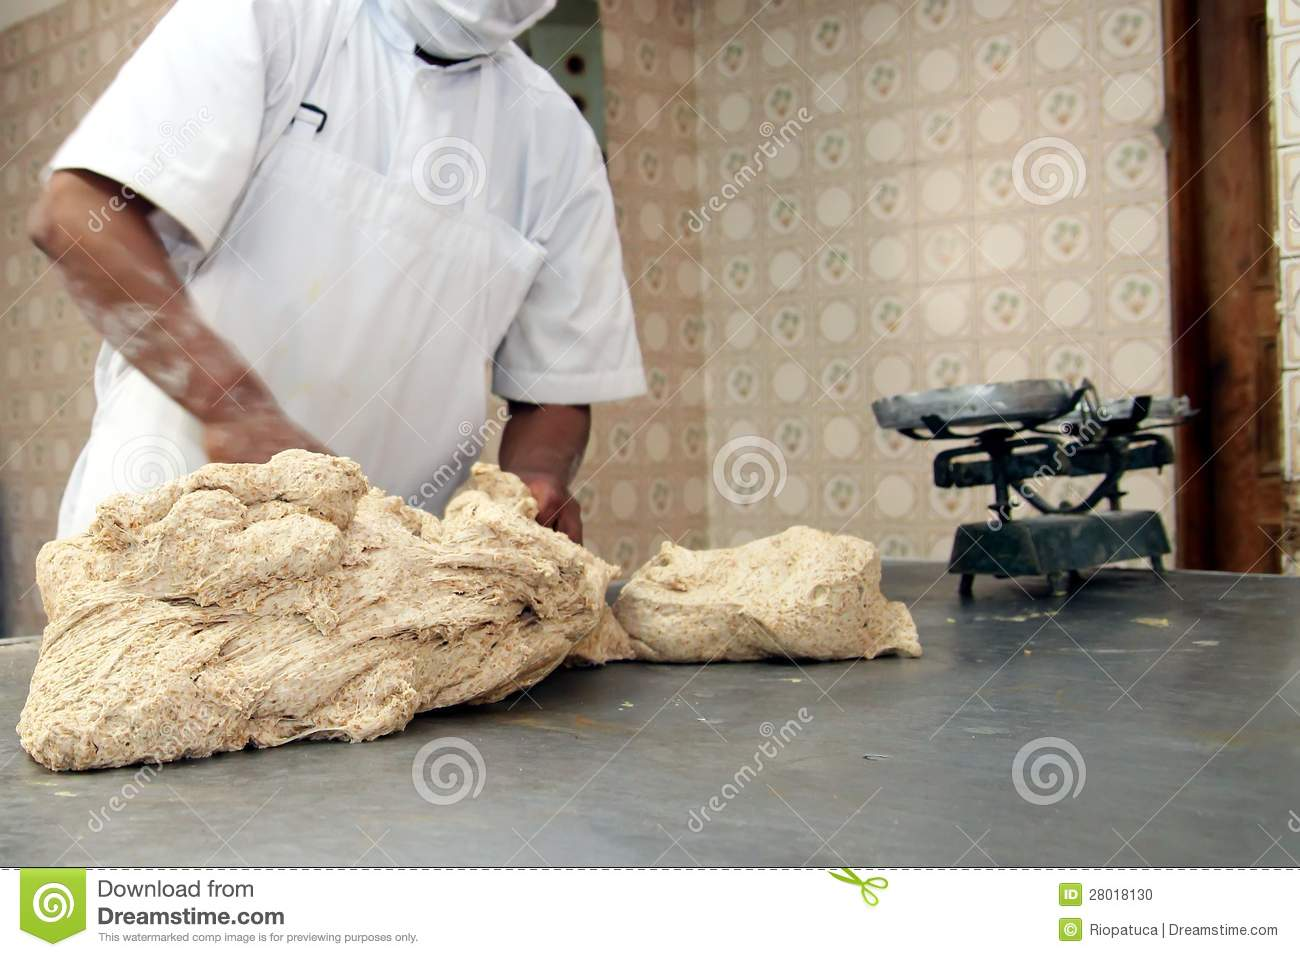 Baker Kneading Raw Dough Stock Photo - Image: 28018130